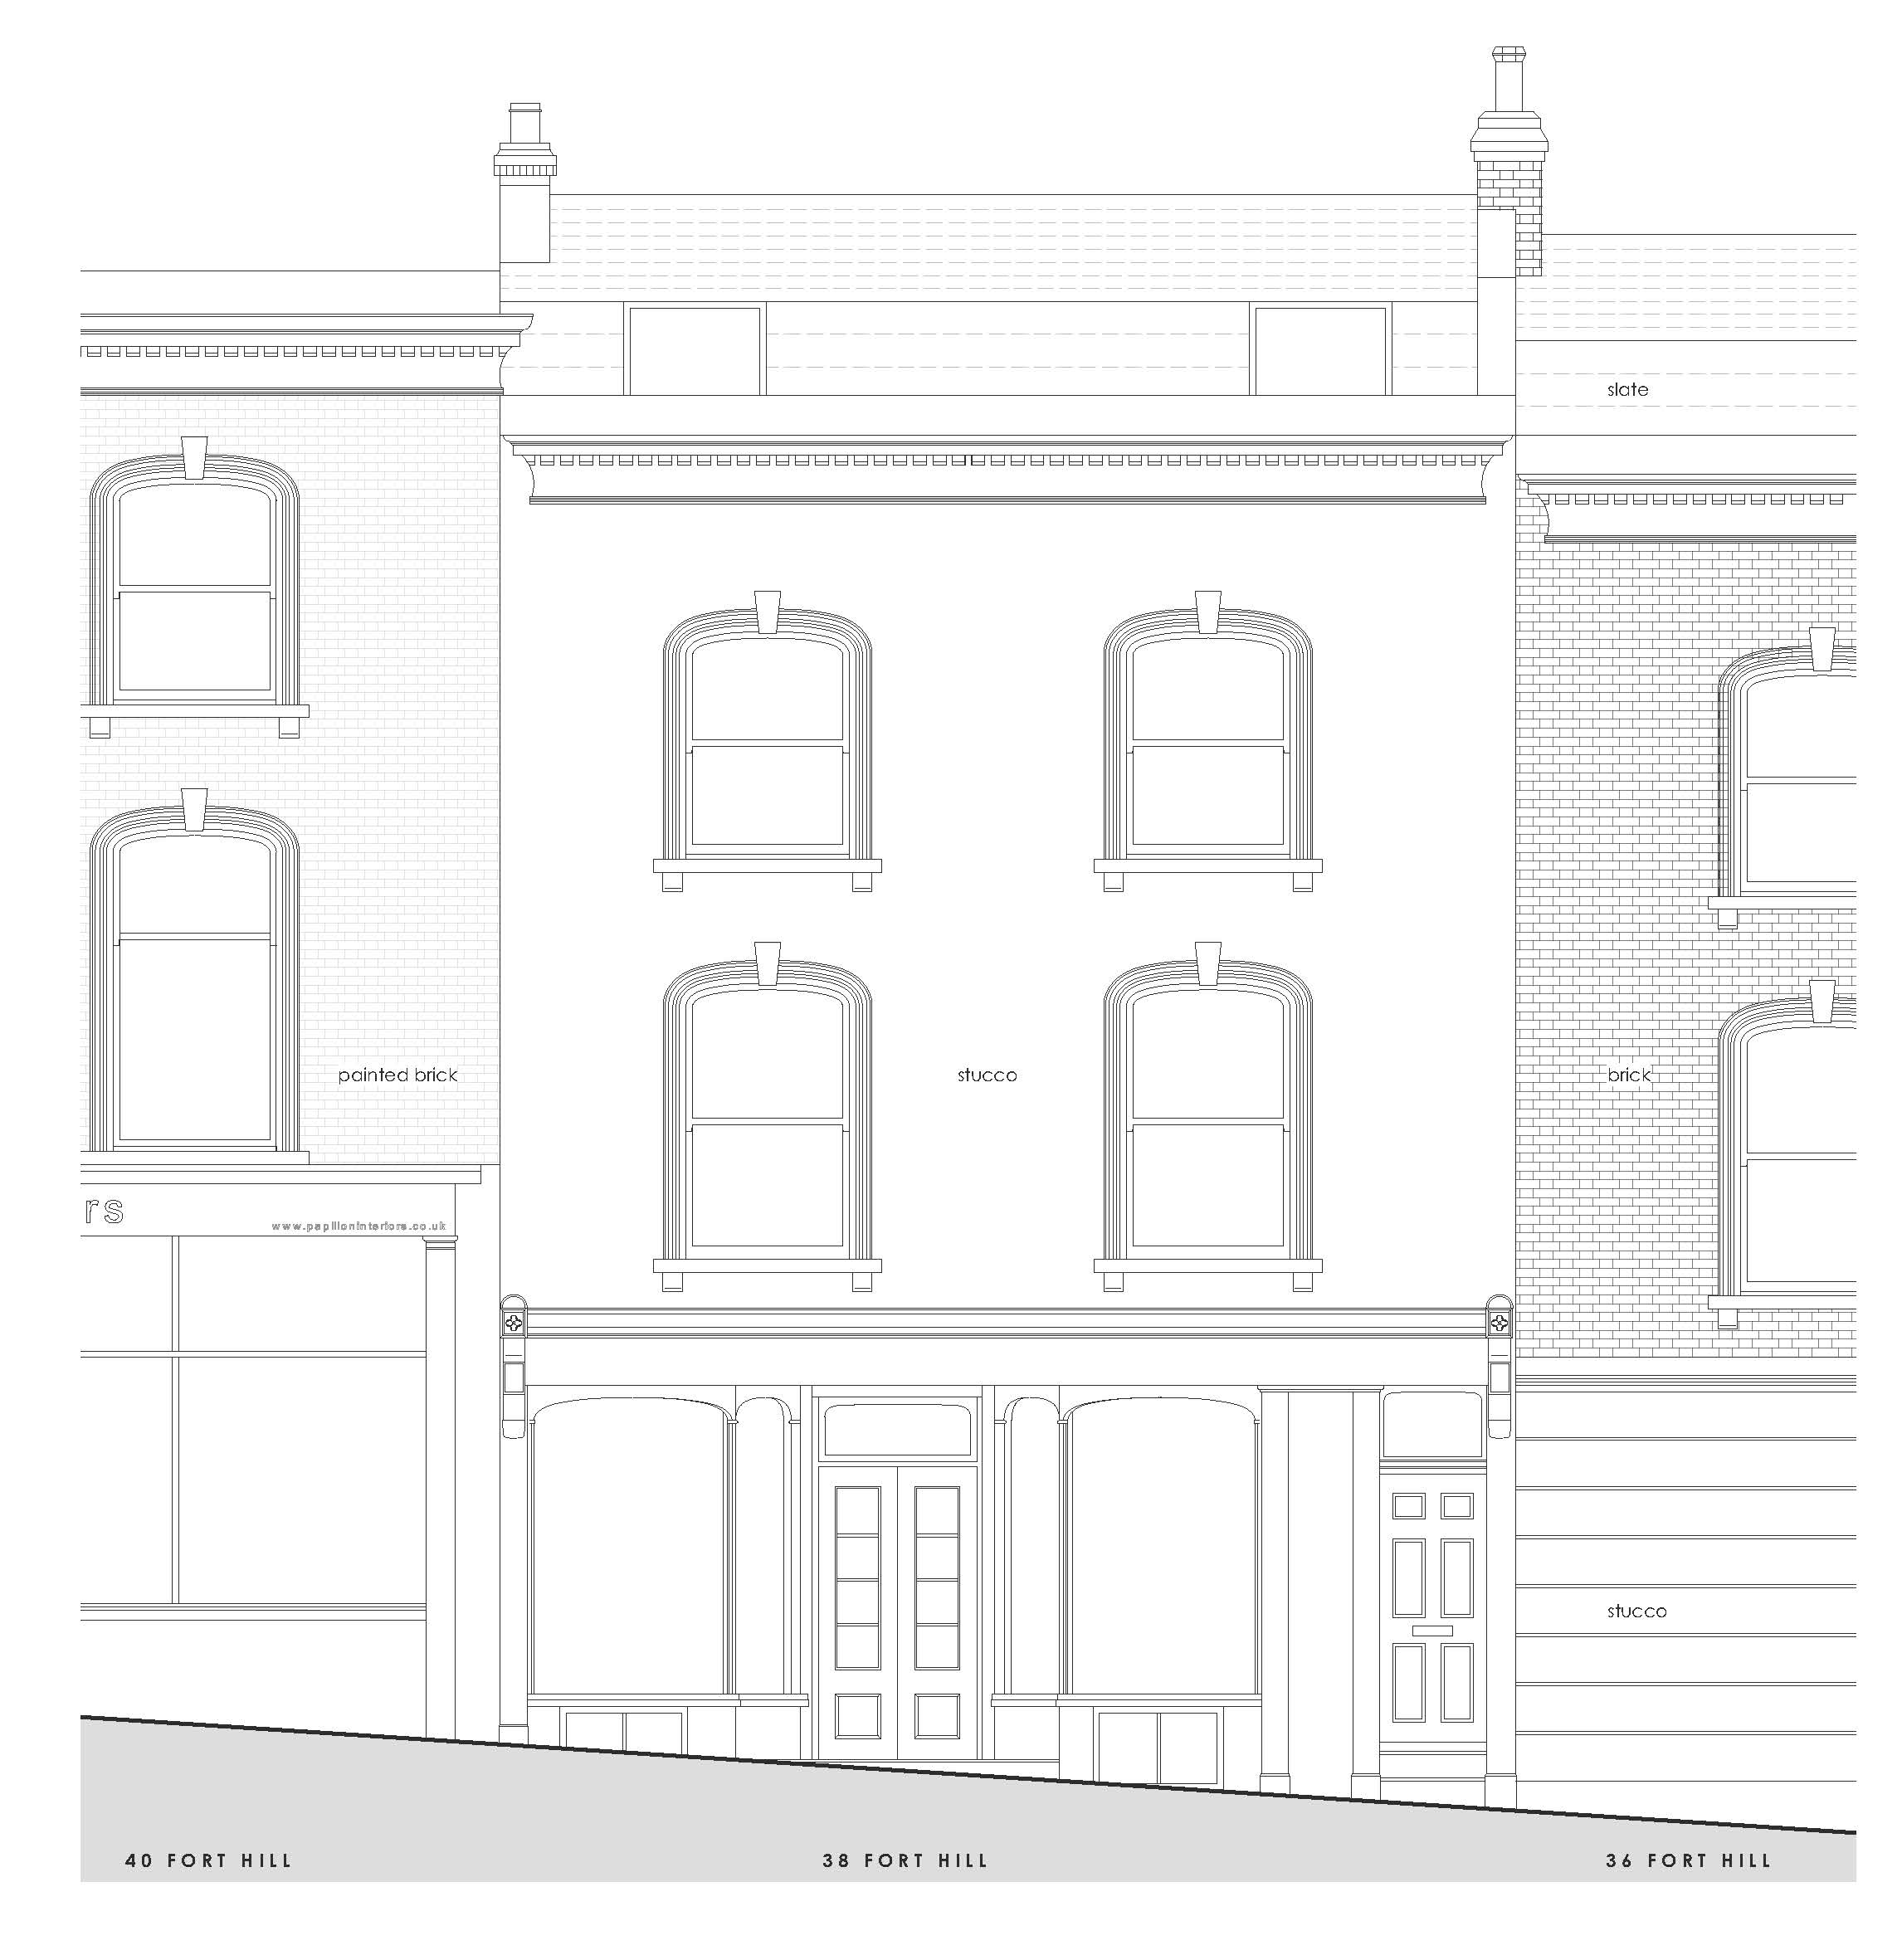 FortHill-Elevation.jpg